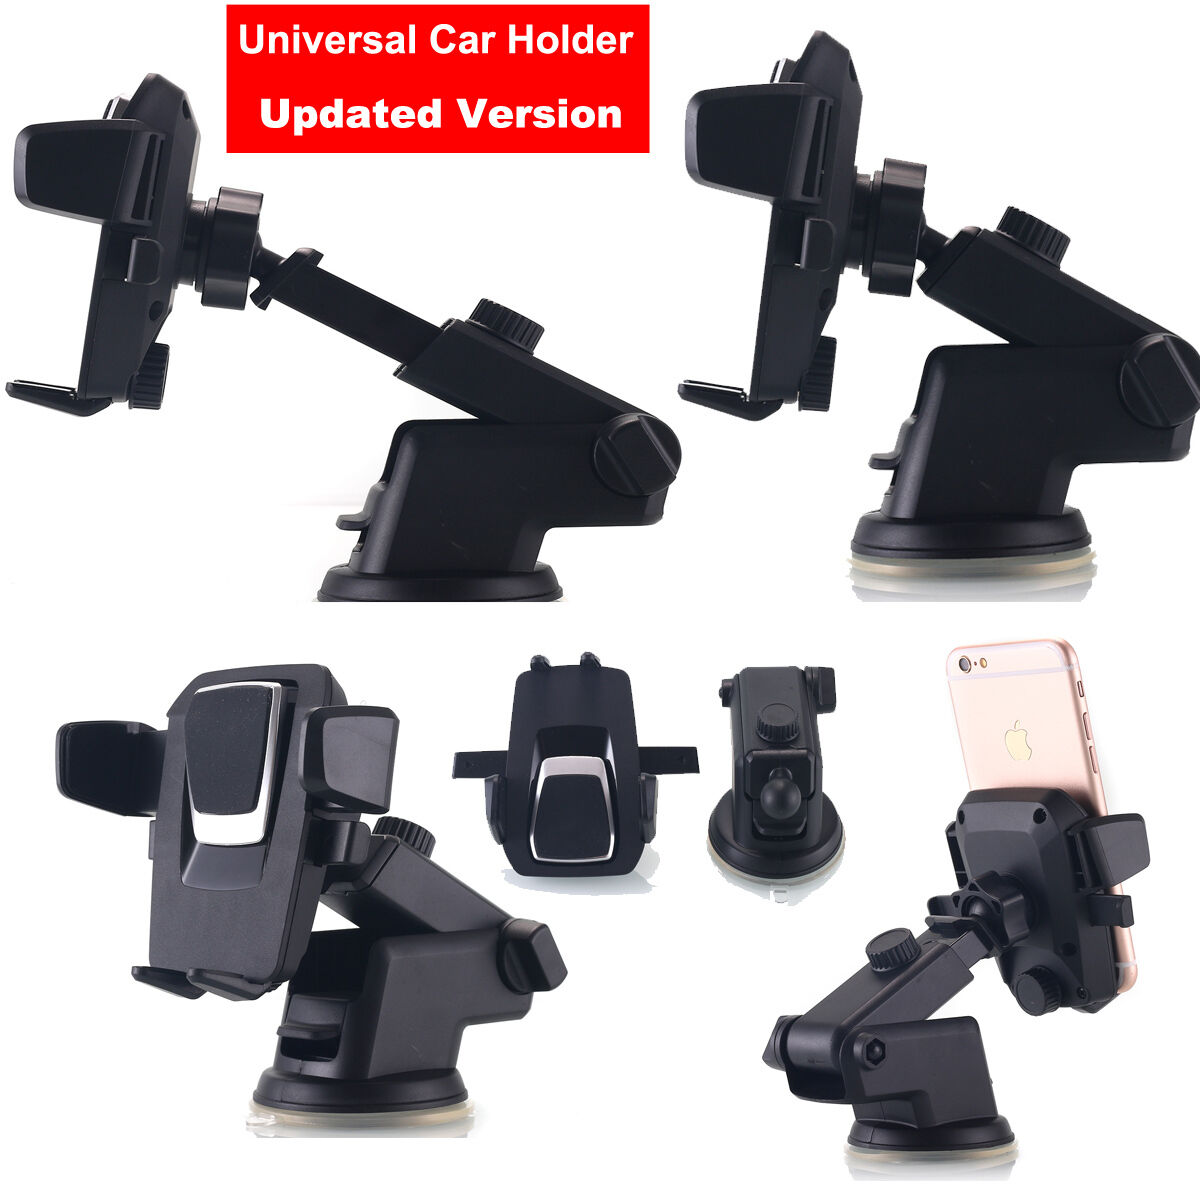 Universal 360°Car Holder Windshield Mount Cradle Cell Phone